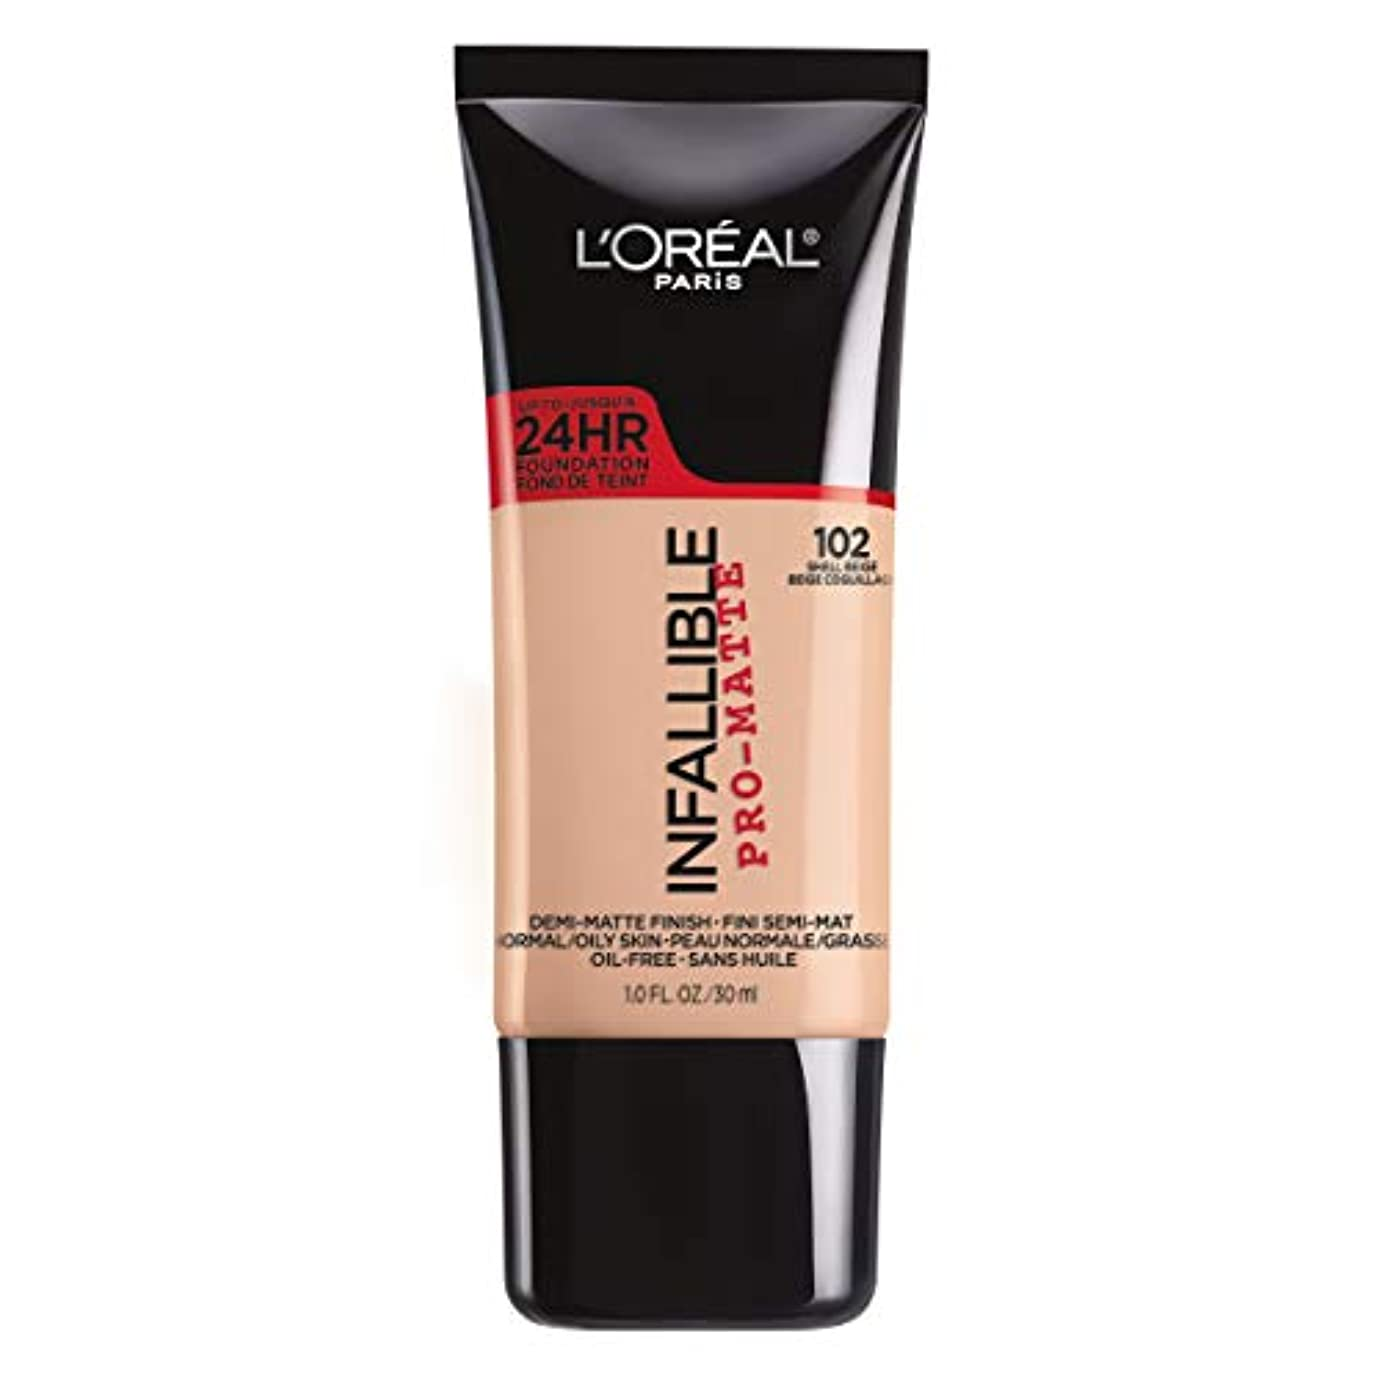 次定数一時停止L'Oreal Paris Infallible Pro-Matte Foundation Makeup, 102 Shell Beige, 1 fl. oz[並行輸入品]